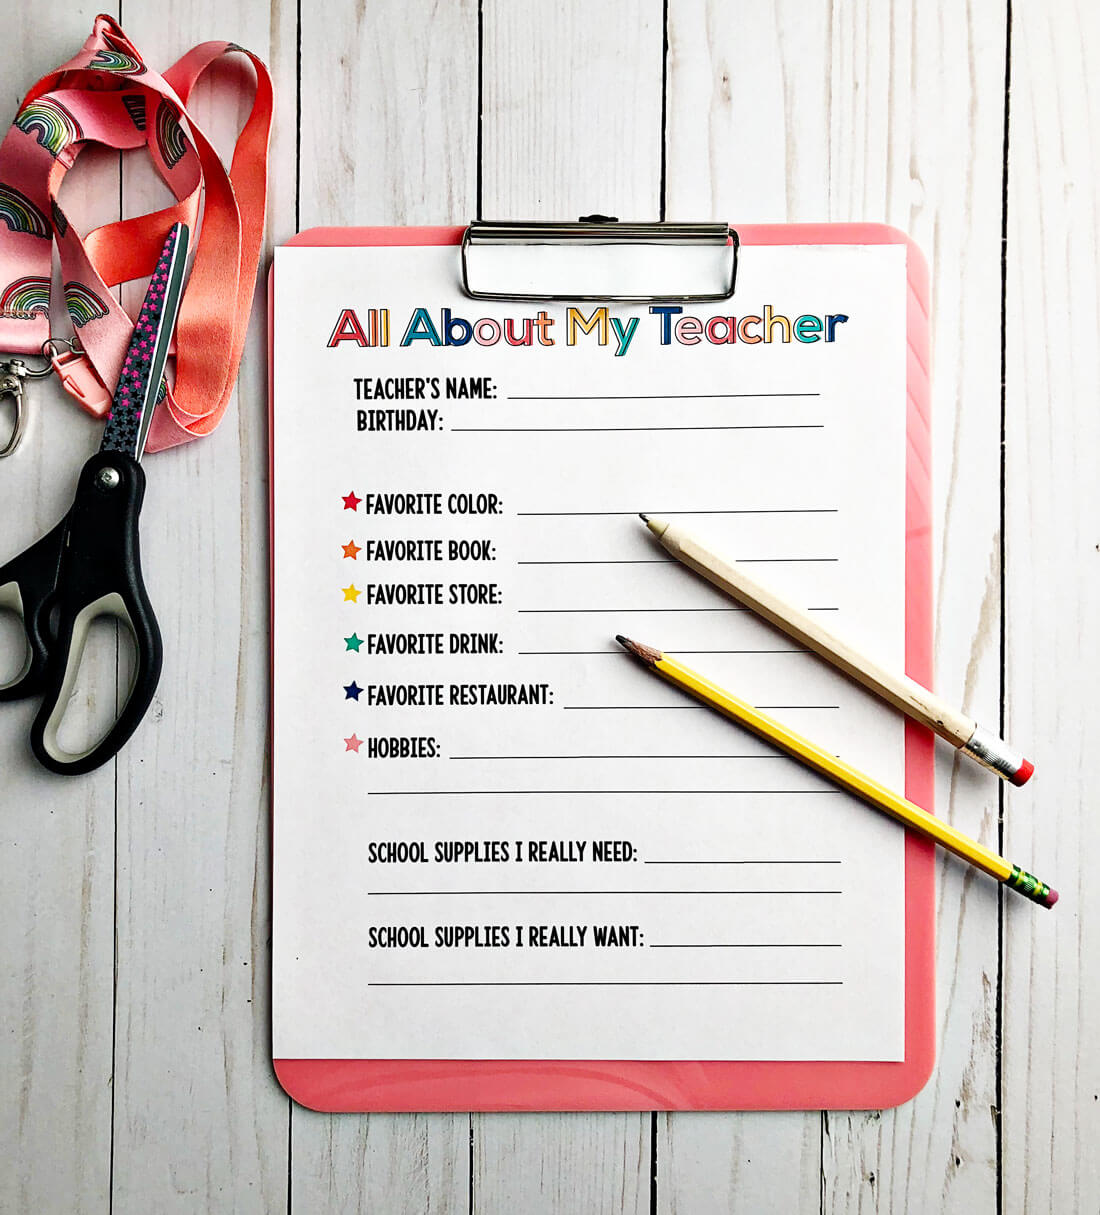 All About My Teacher Printable For Ts